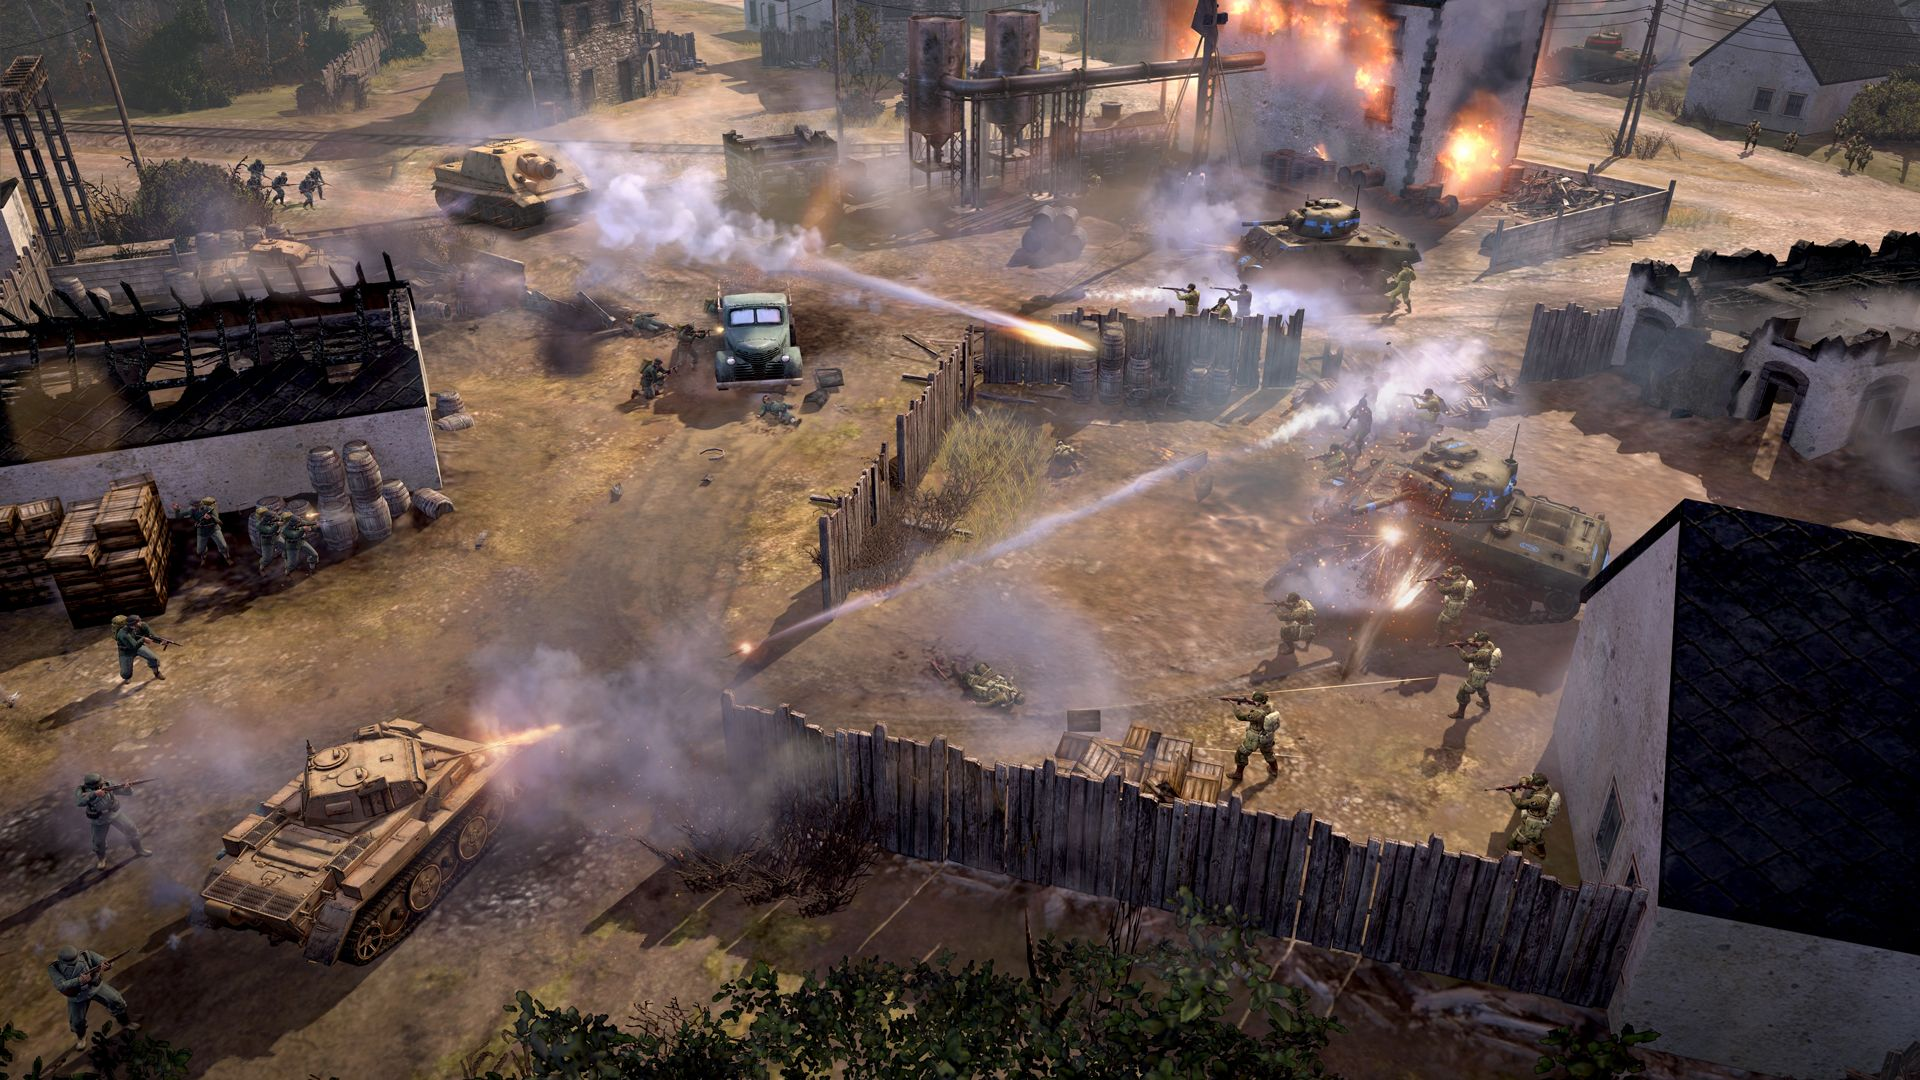 Case Blue Company Of Heroes 2 : Company of heroes case blue mission pack rus steam gift buy hd